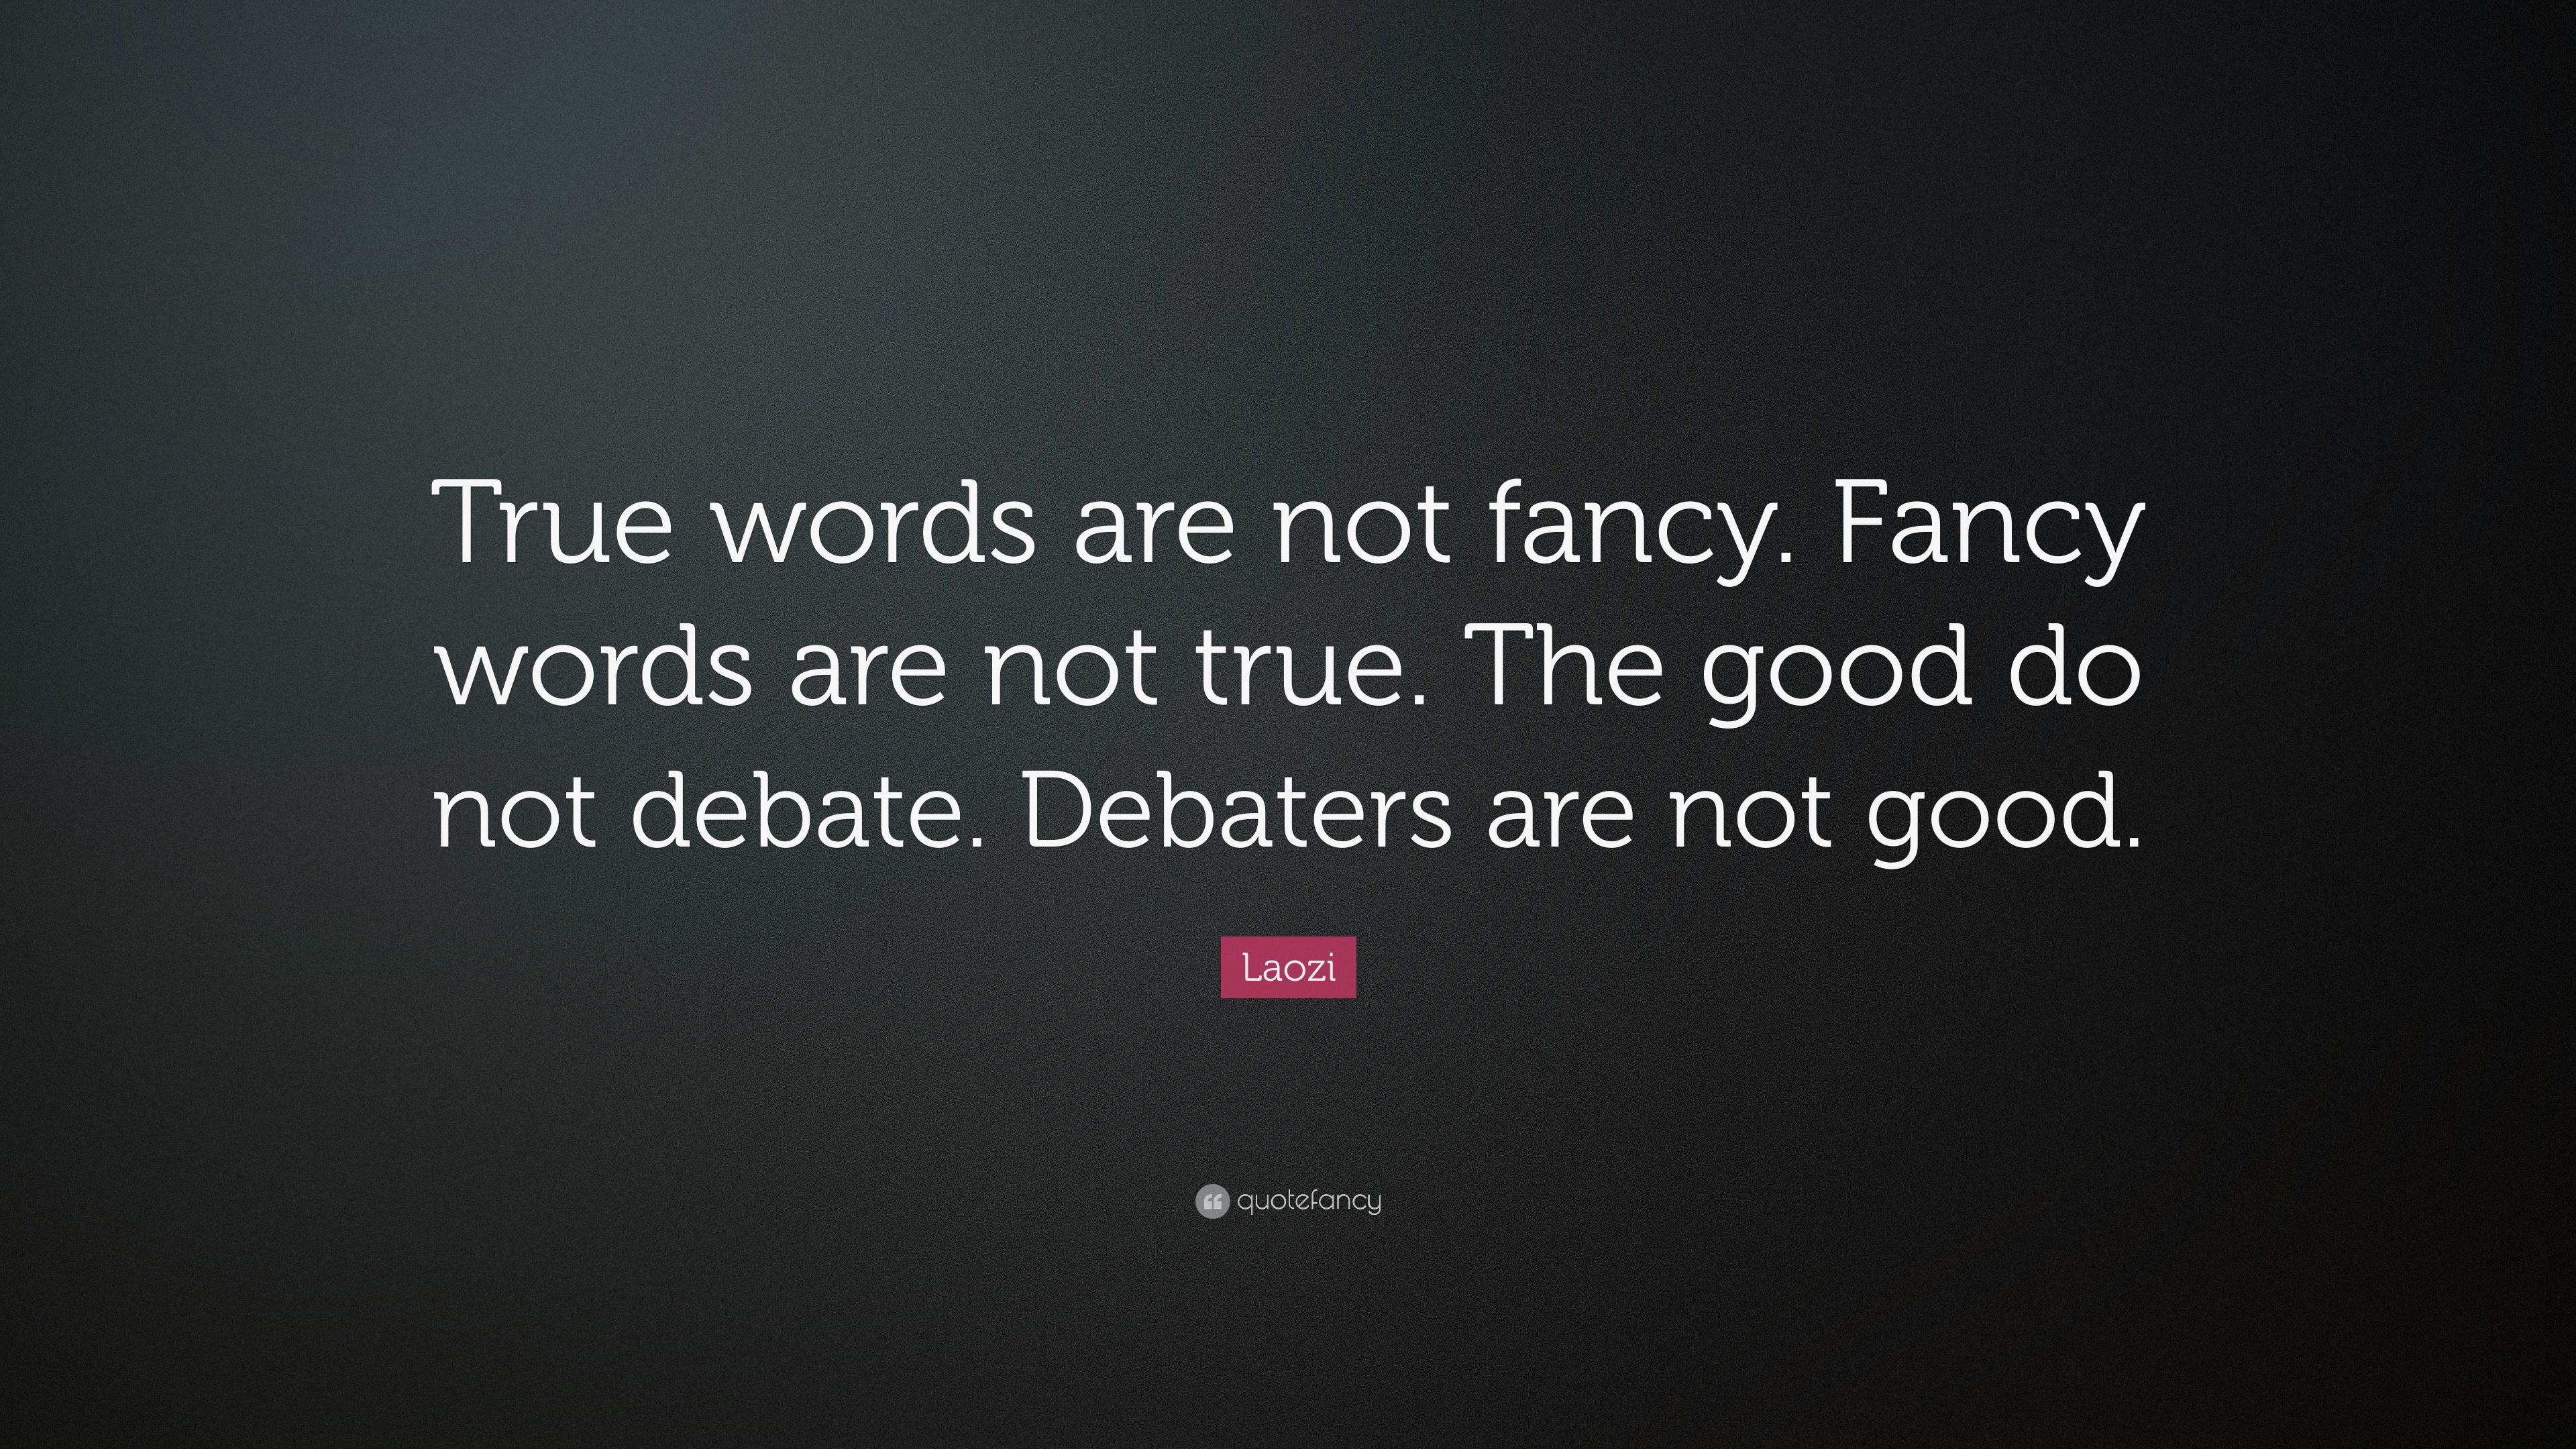 laozi quote true words are not fancy fancy words are not true